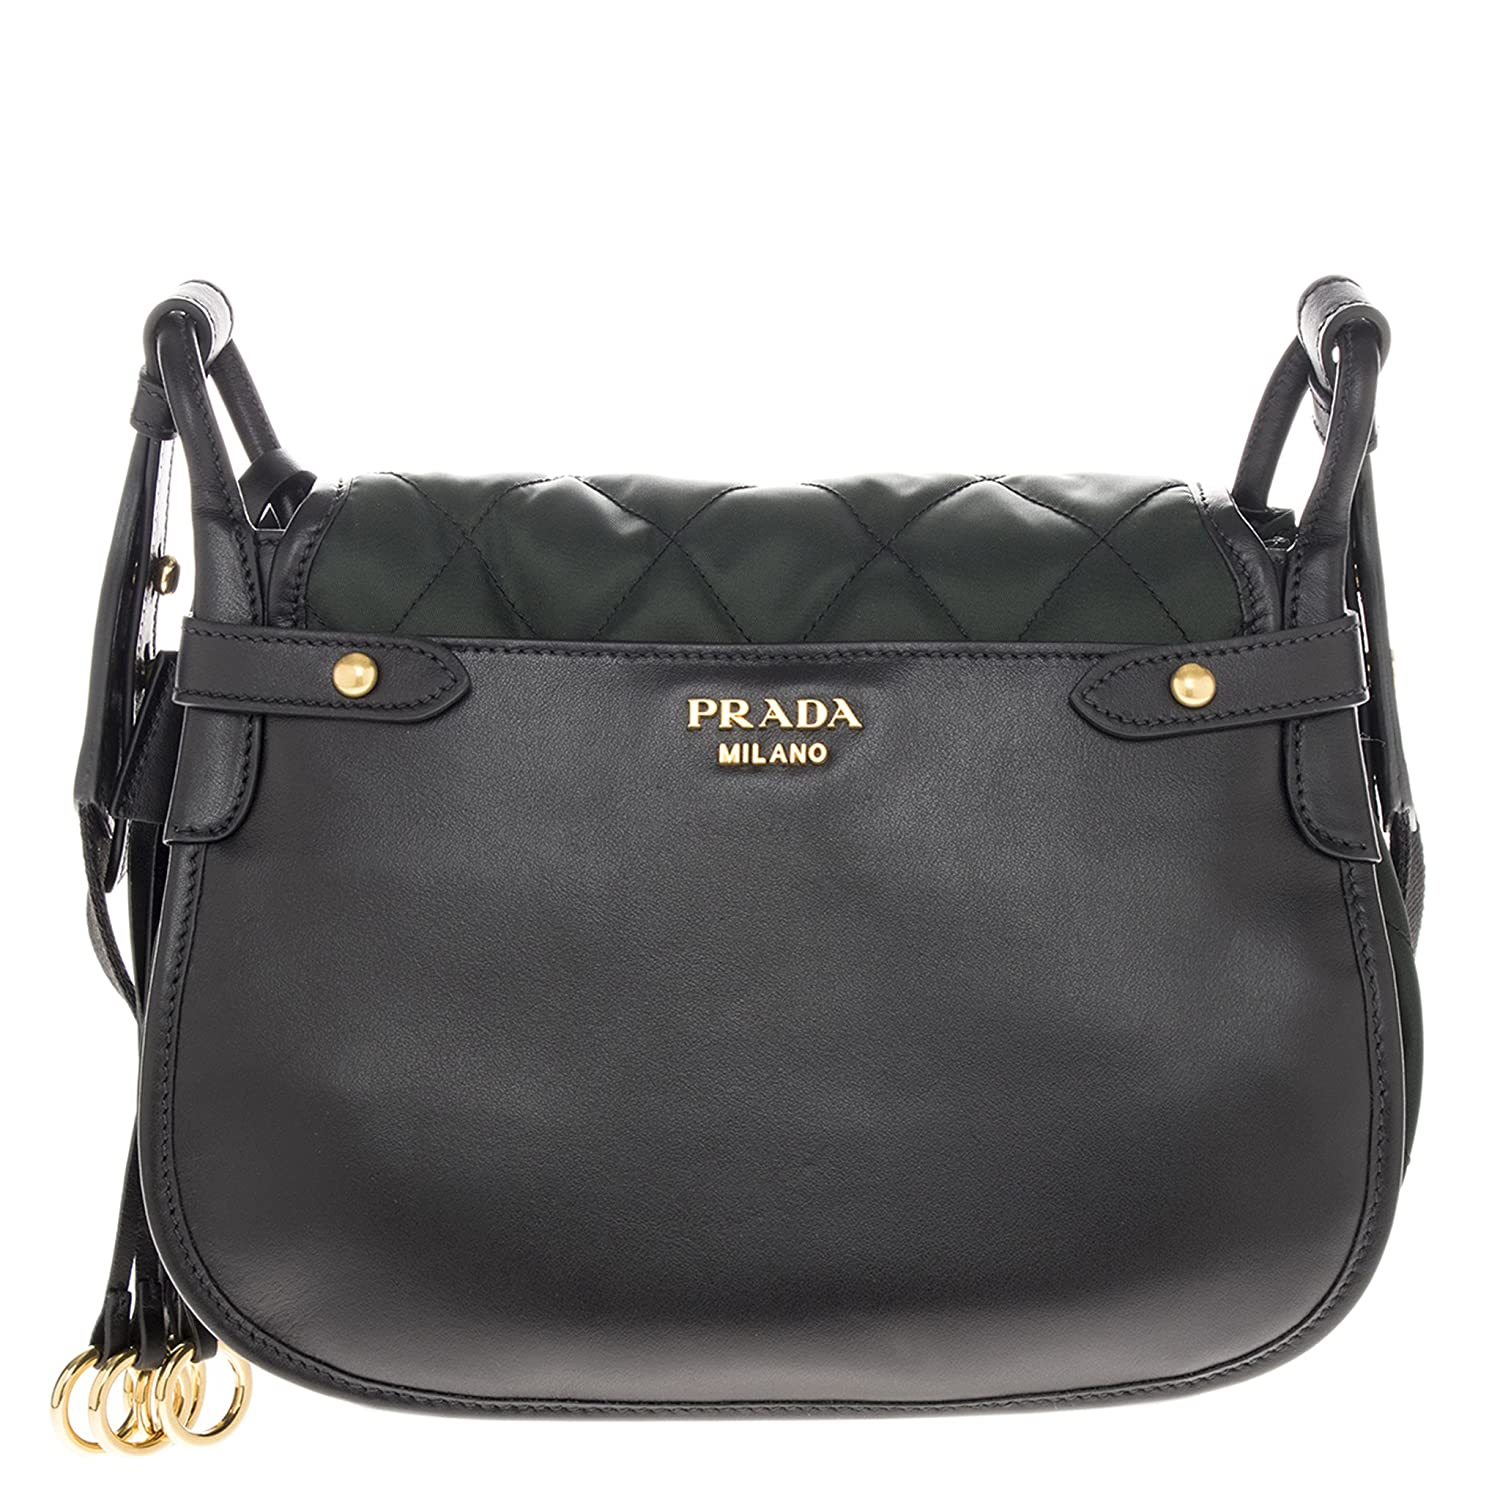 43462e6bf7c0 Amazon.com: Prada Women's Corsaire Quilted Handbag Green: Clothing